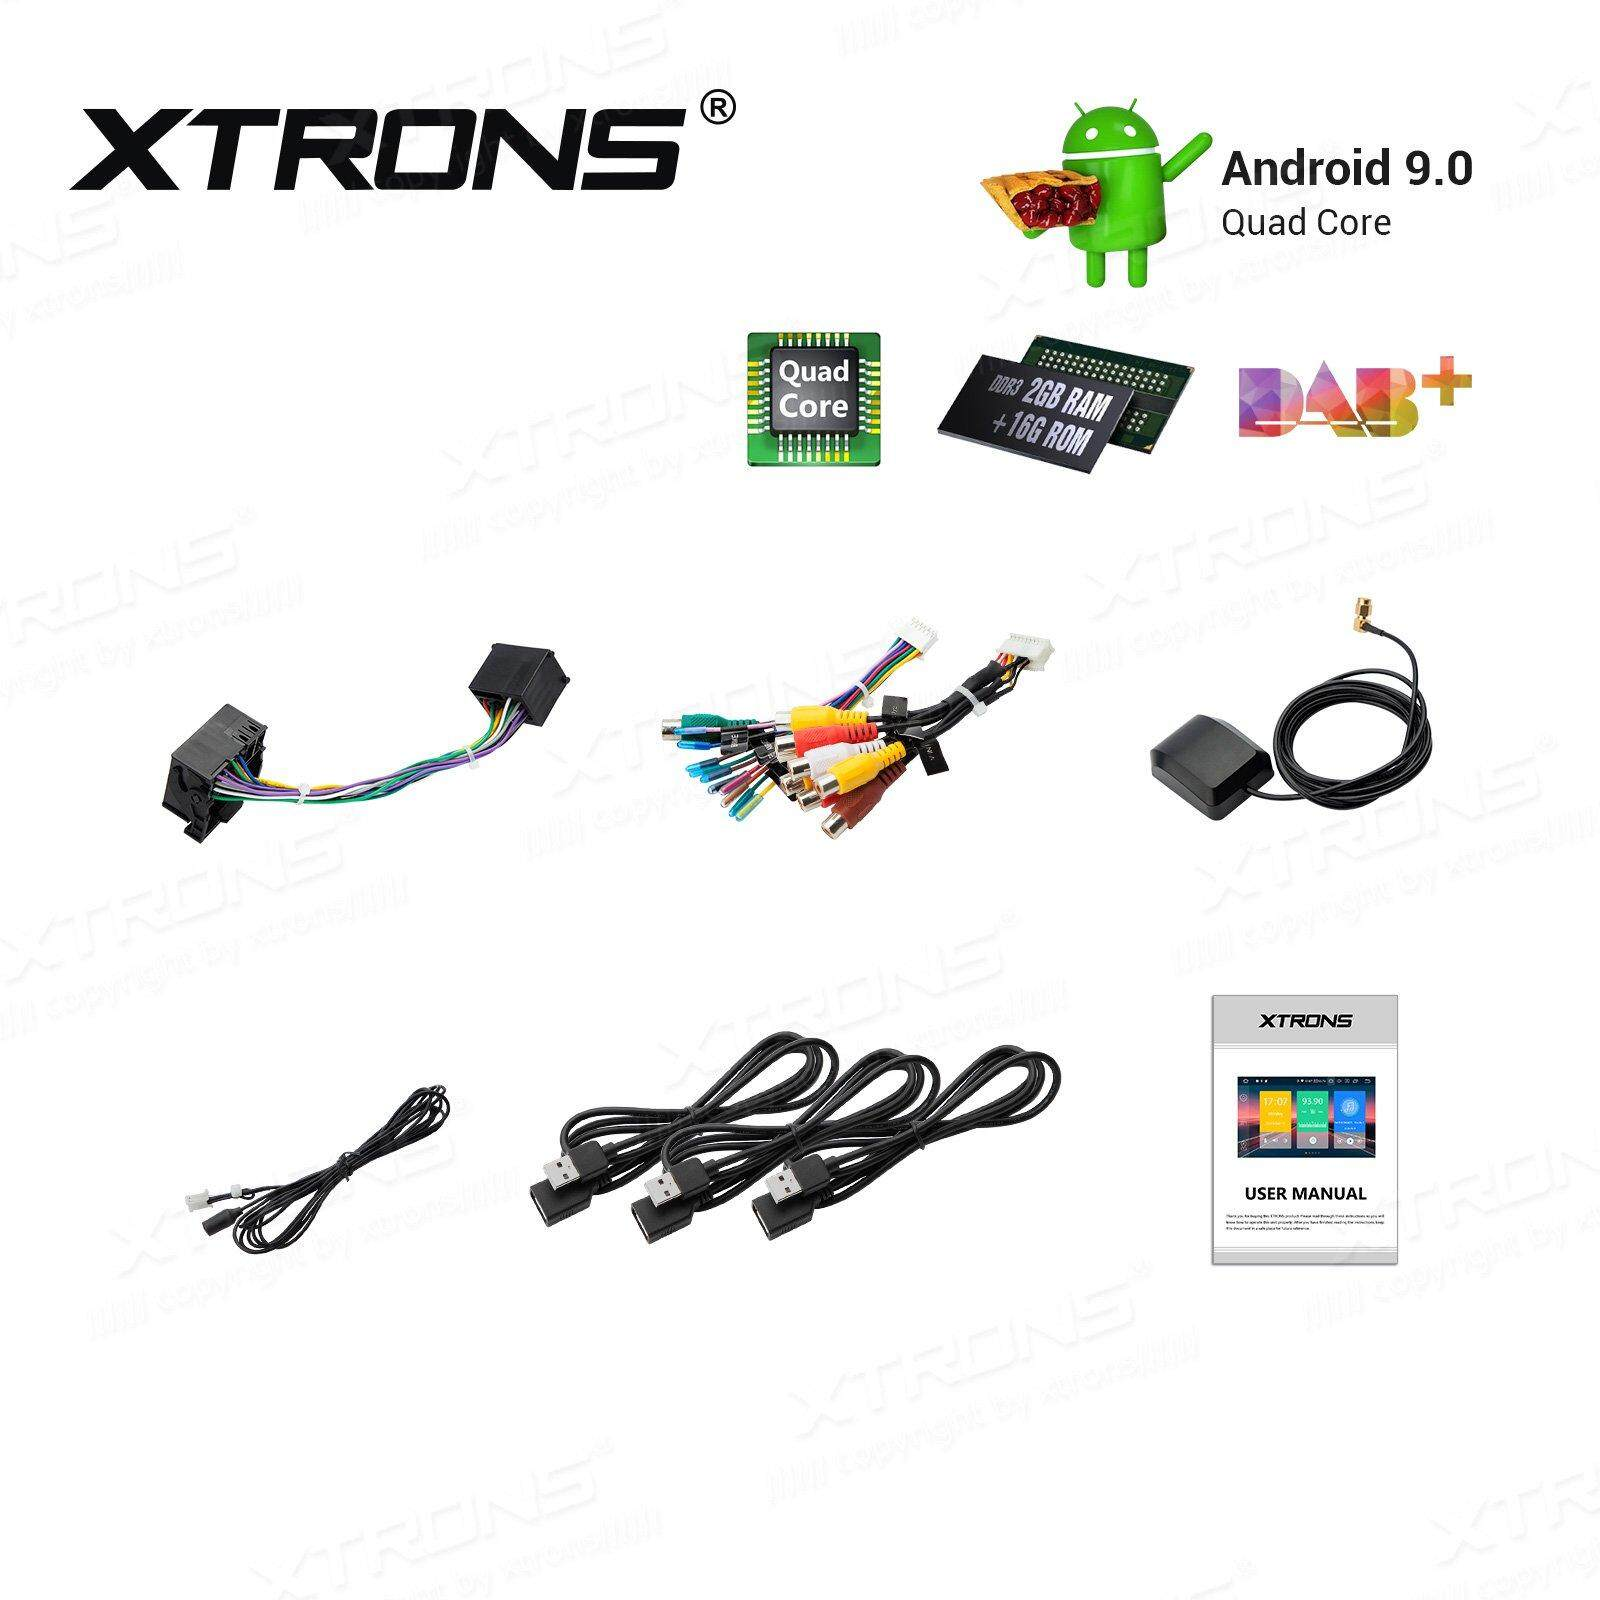 XTRONS Android 9 0 Car Stereo GPS Navigator 9 Inch Touch Screen Slim Design  in-Dash No-DVD Player Quad Core Head Unit Auto Radio Supports Plug and